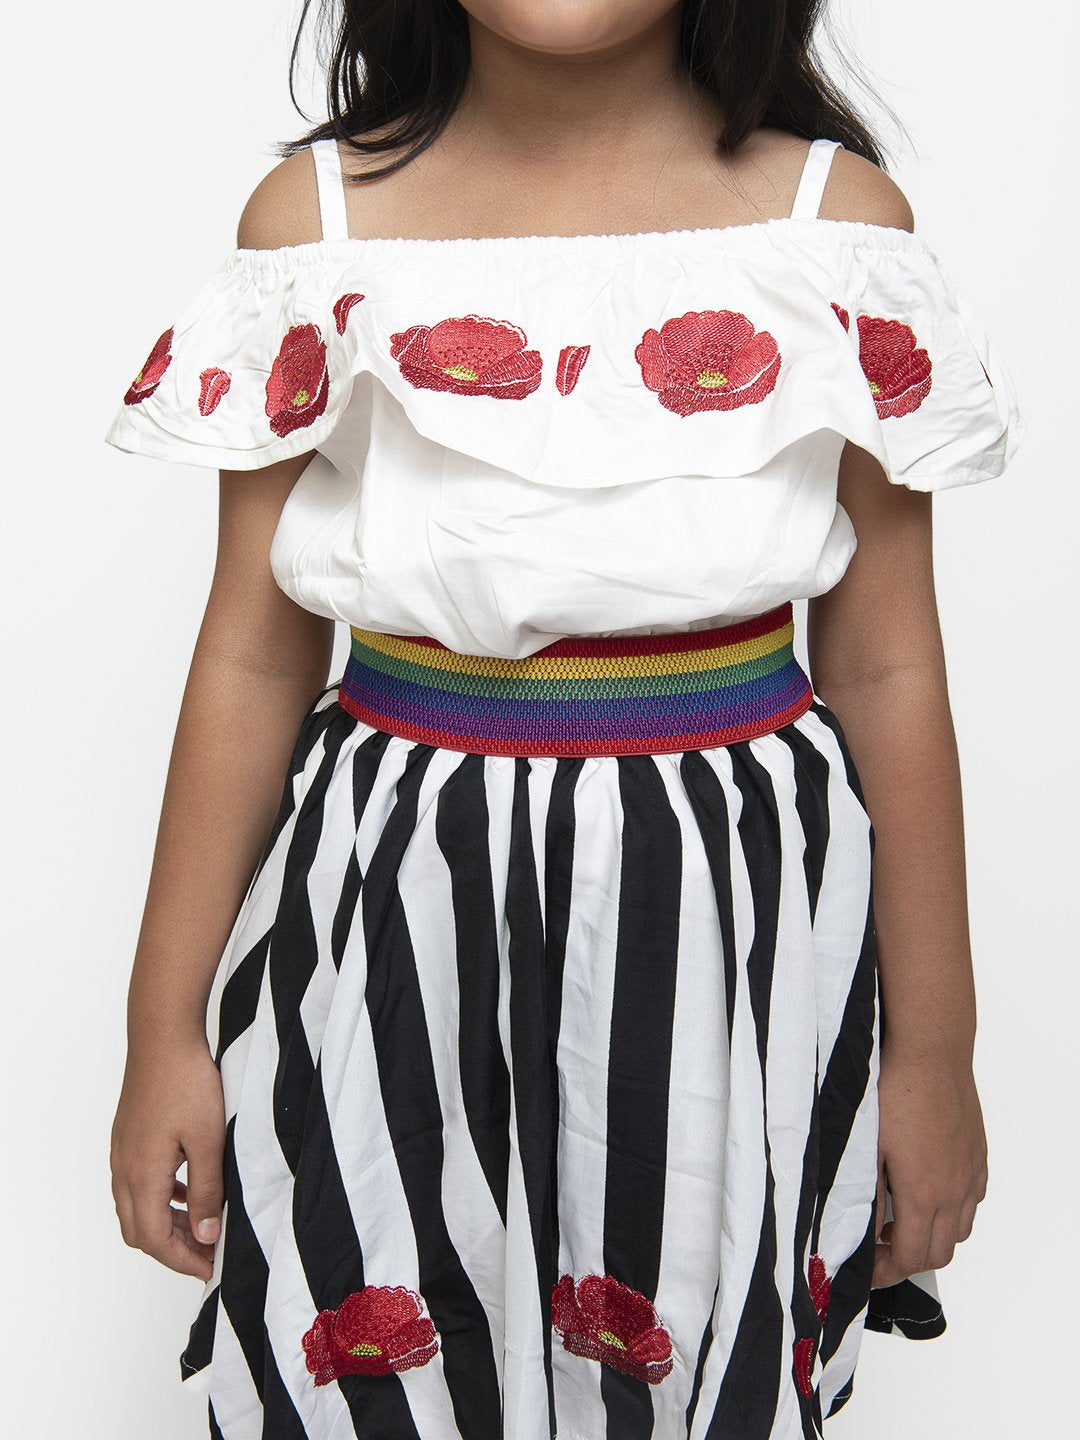 Peonies Skirt and Top Set